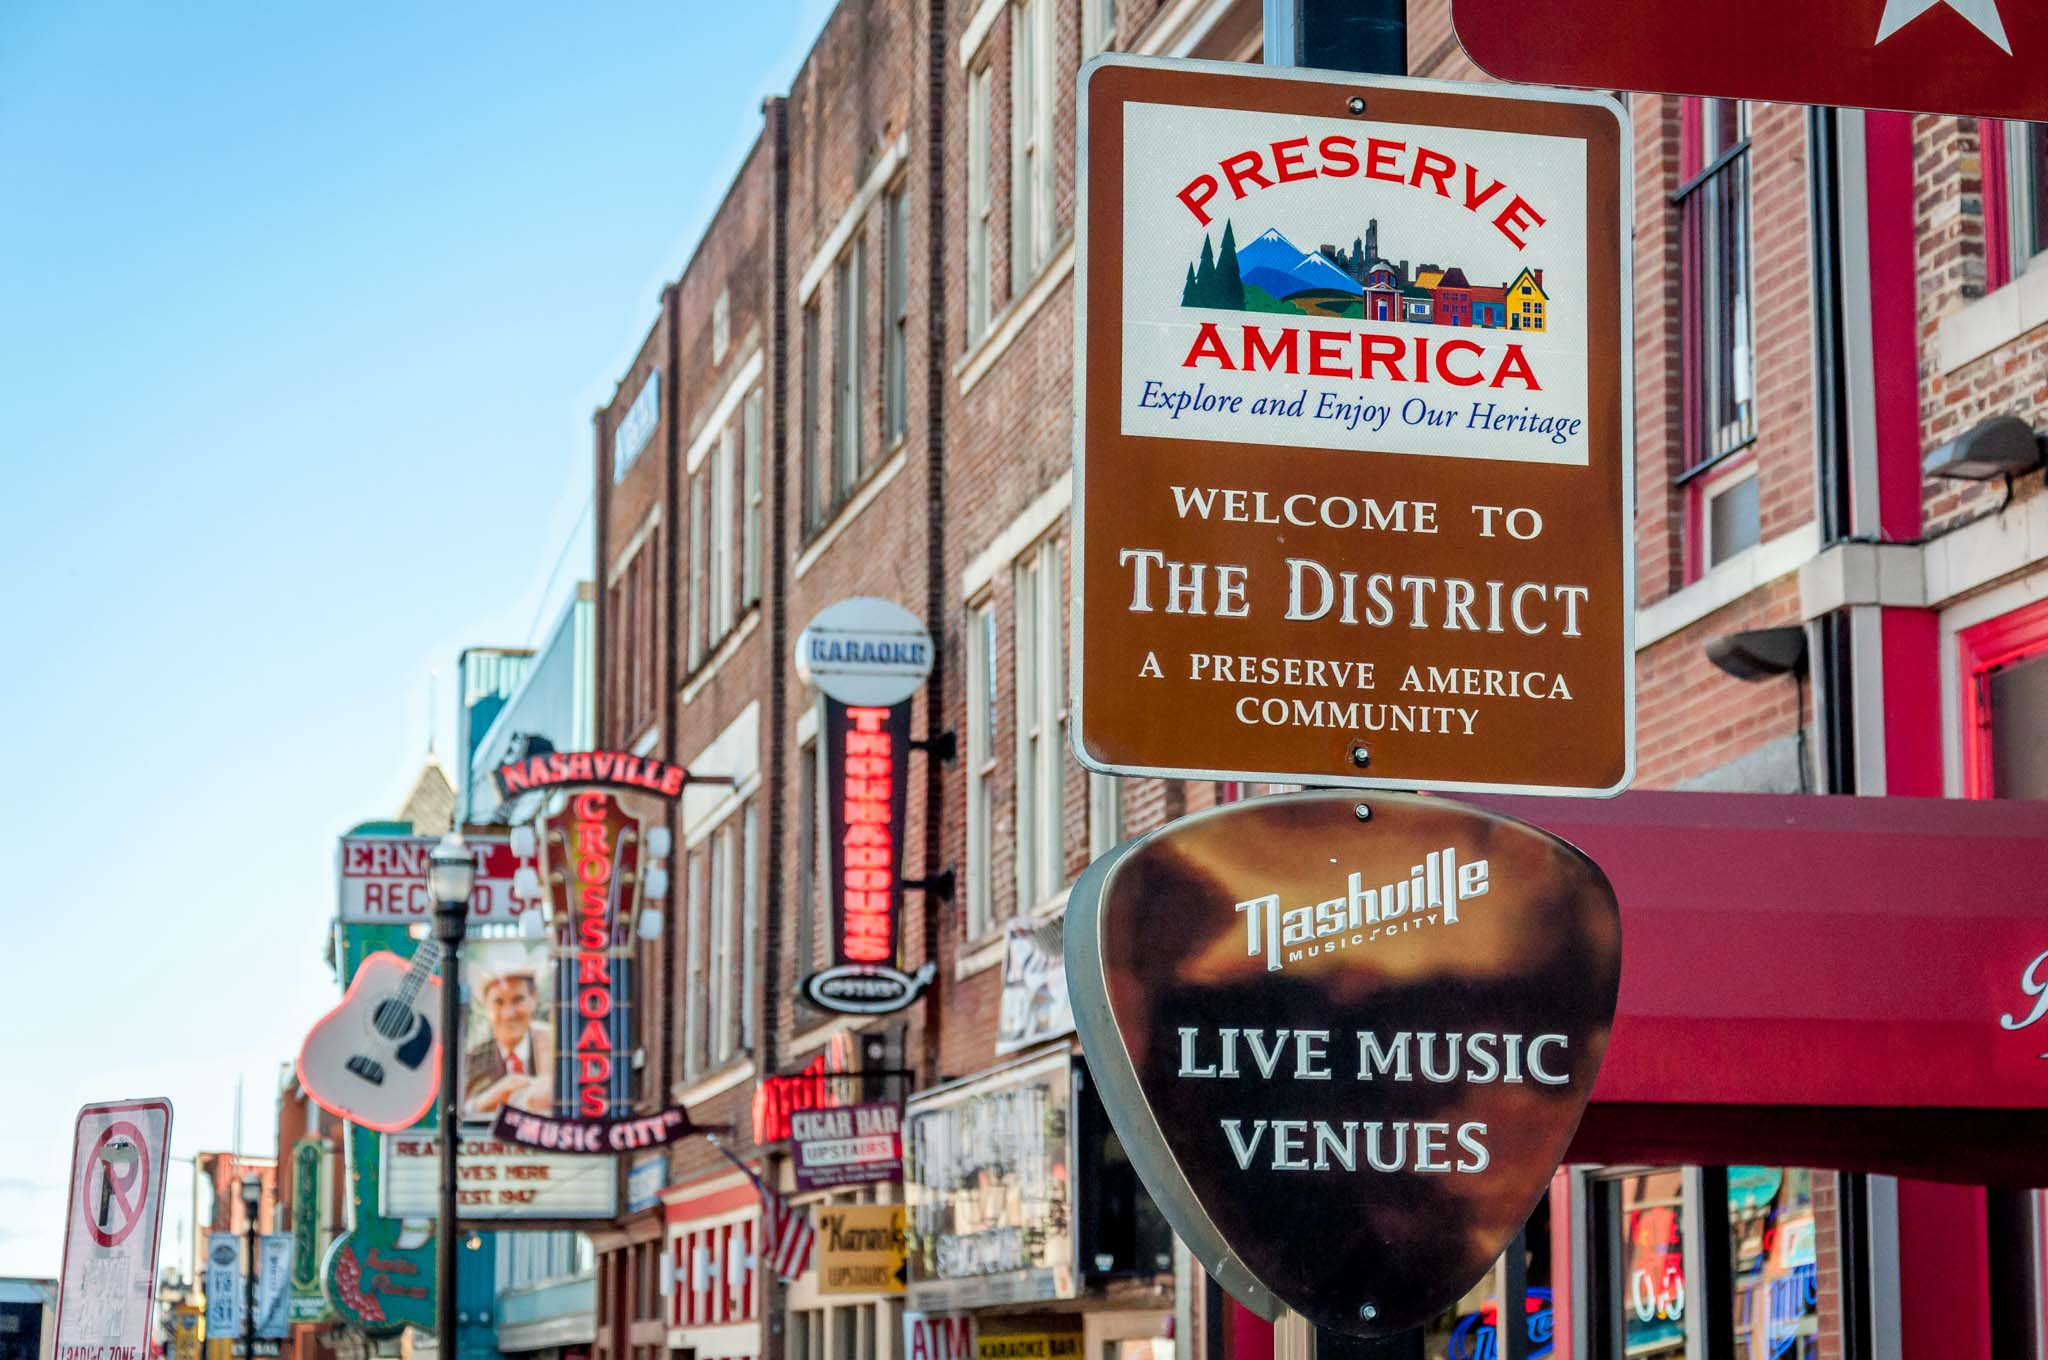 Broadway in Nashville, Tennessee. A visit here is one of the best things to do in Nashville TN.